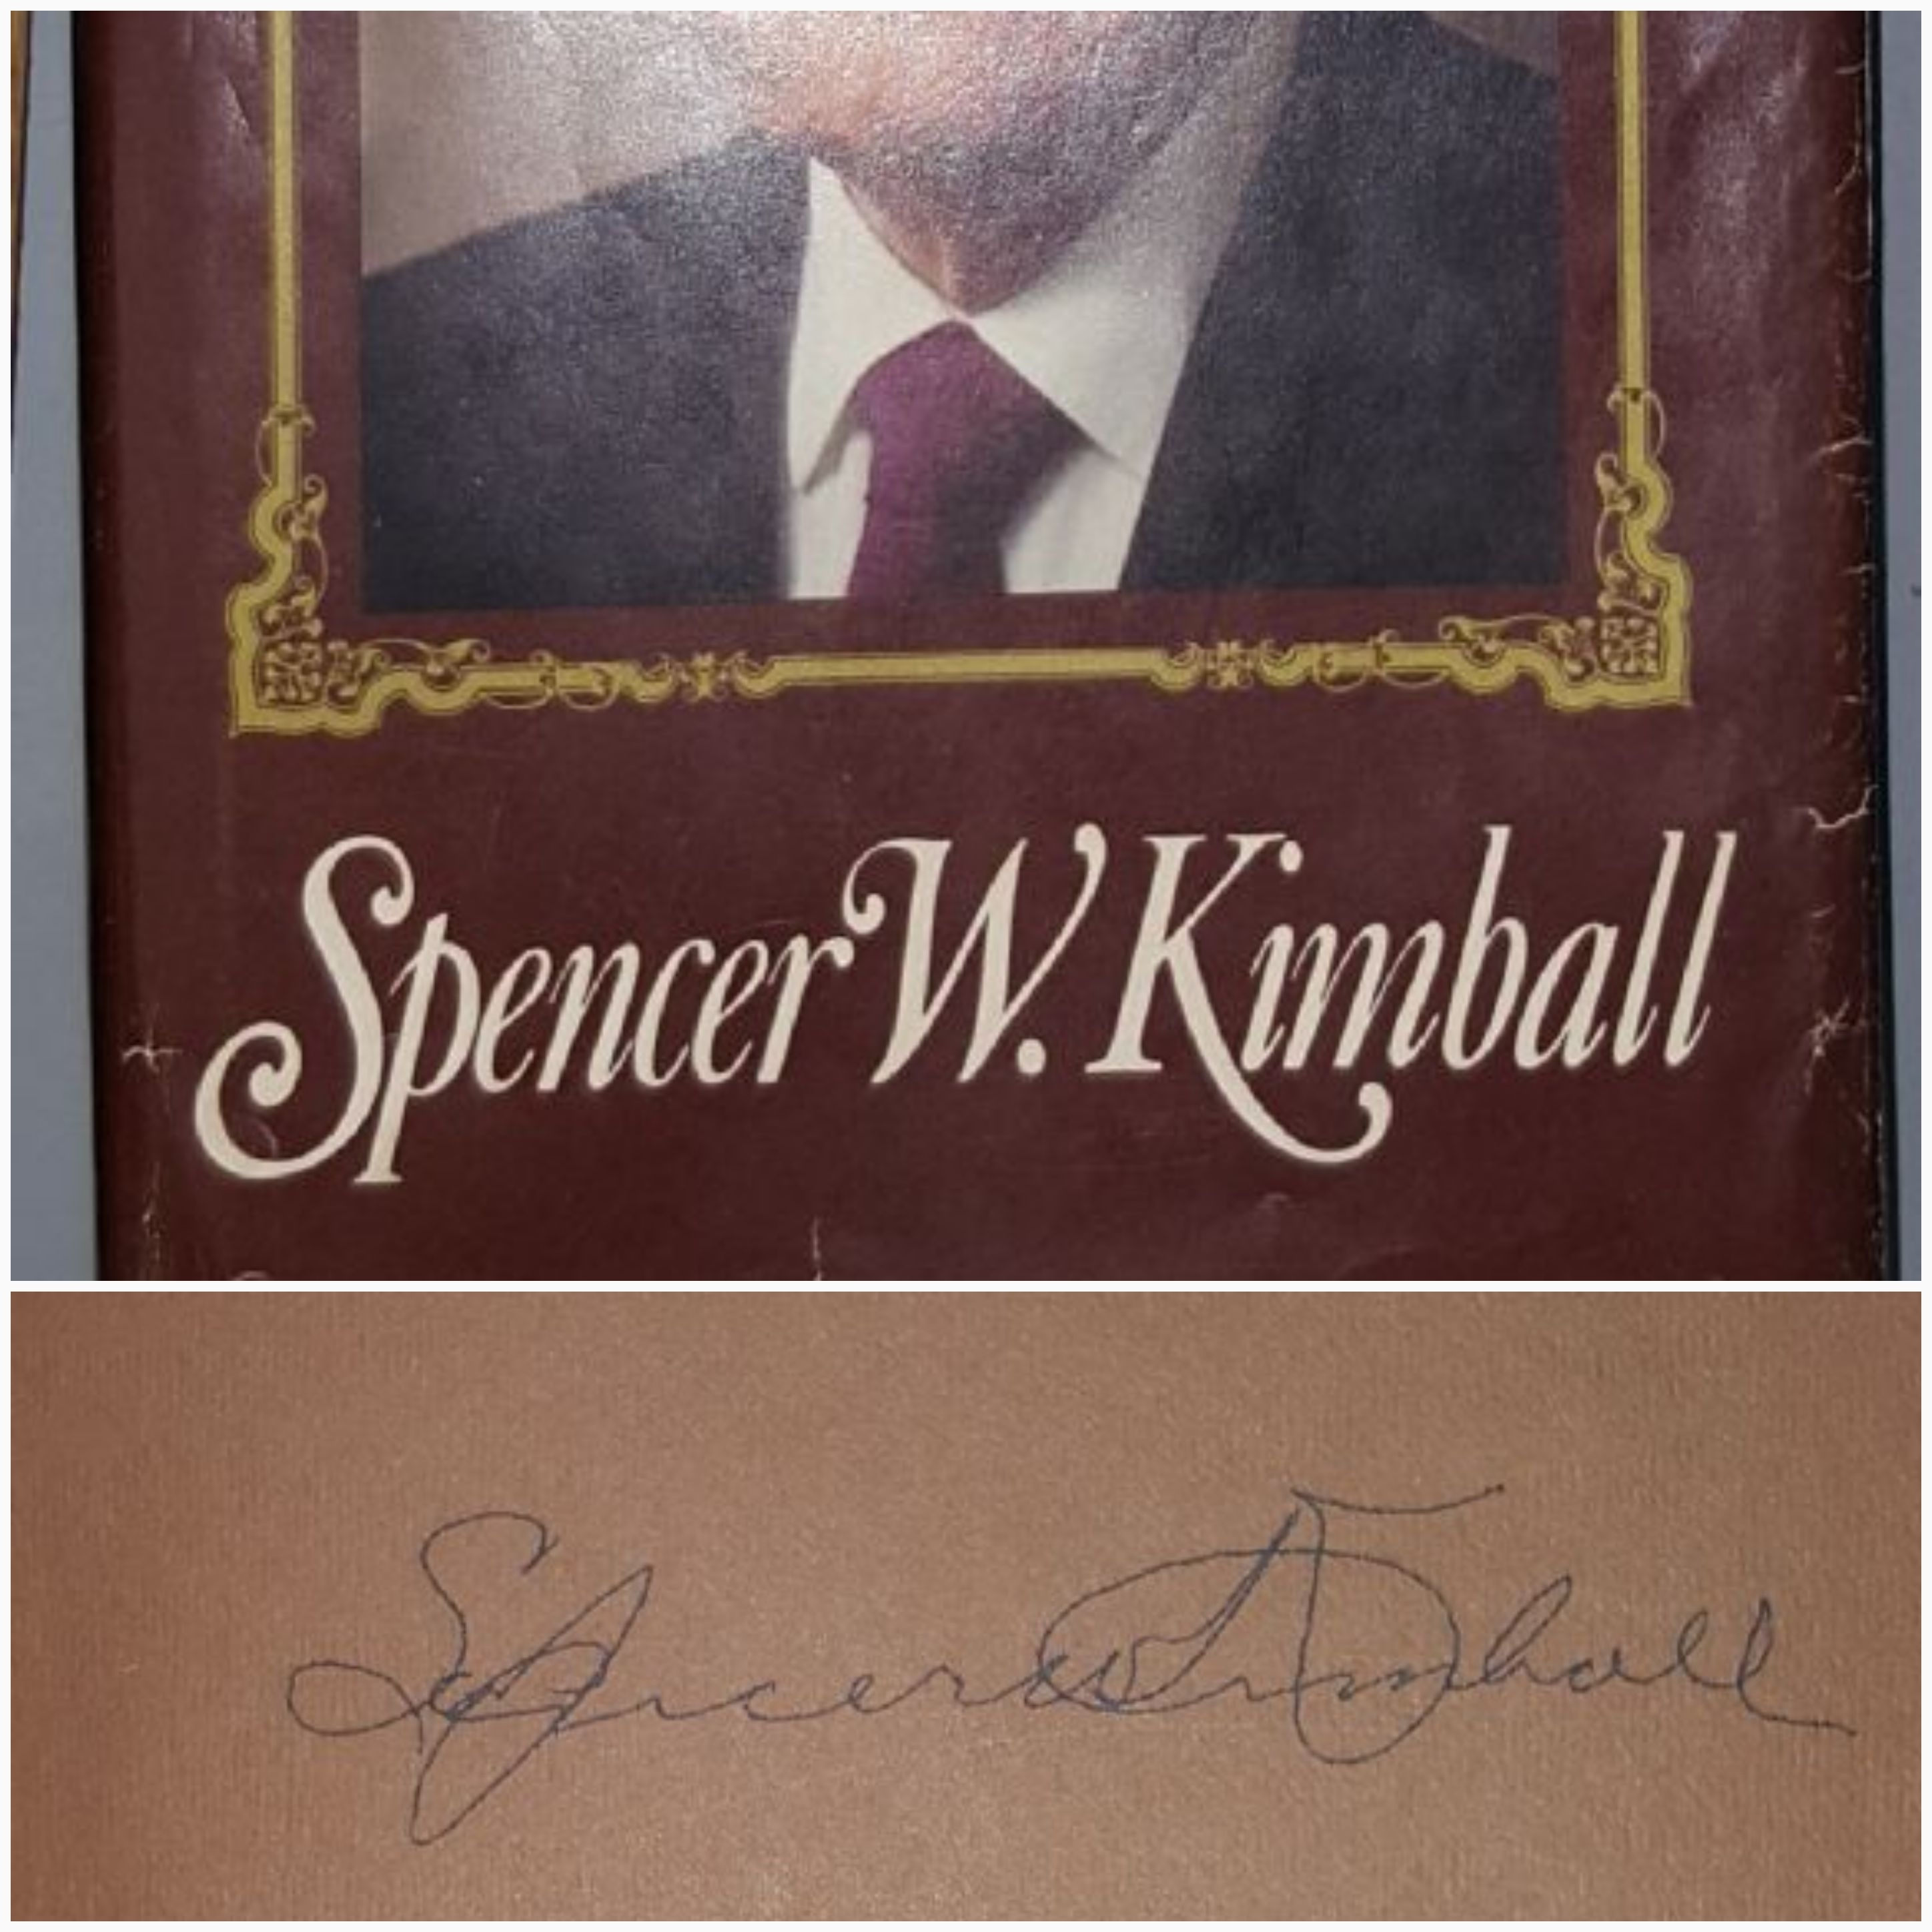 Image for SPENCER W. KIMBALL - THE EARLY AND APOSTOLIC YEARS - Twelfth President of the Church of Jesus Christ of Latter-Day Saints